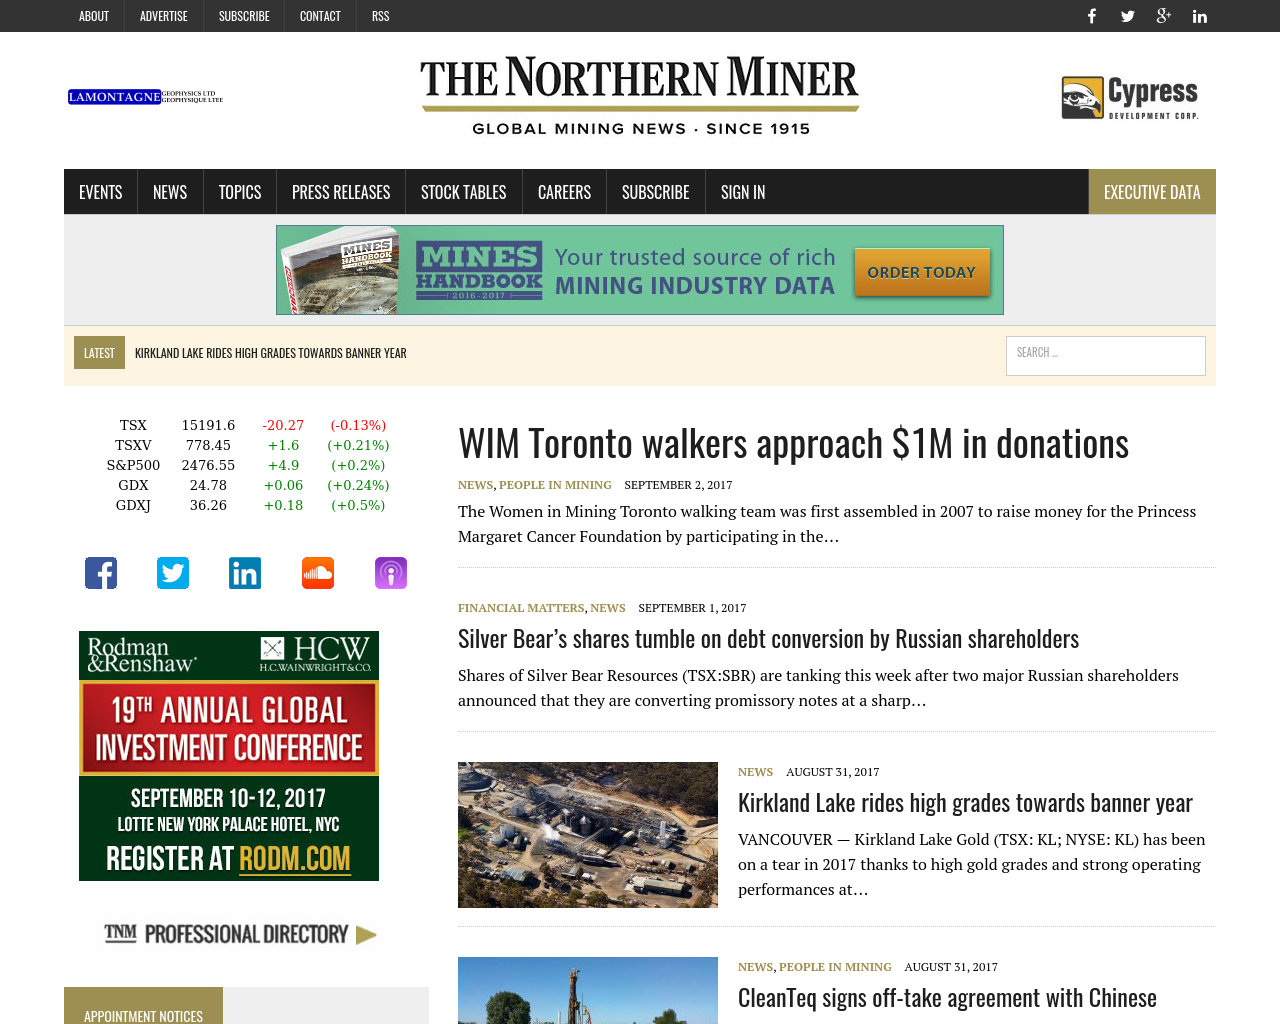 The-Northern-Miner-Advertising-Reviews-Pricing